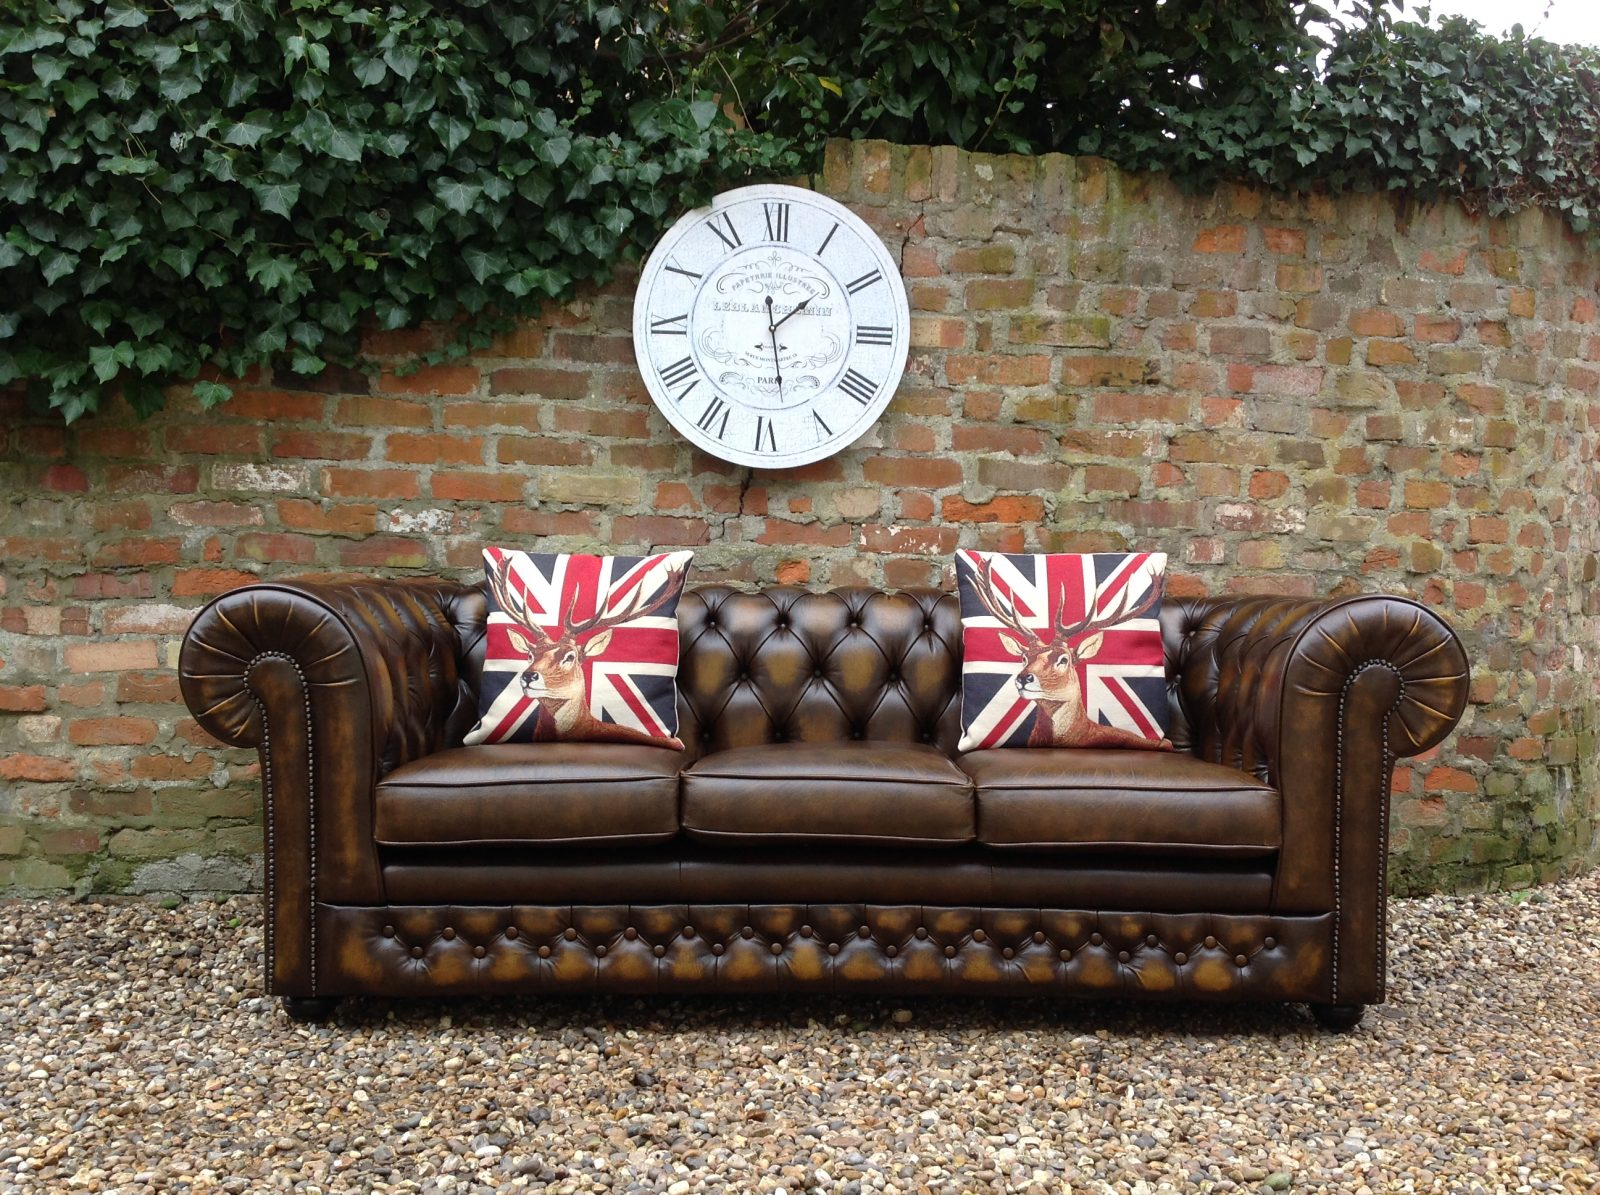 Antique Gold Thomas Lloyd Chesterfield Sofa.(Matching 2 Seater Available)